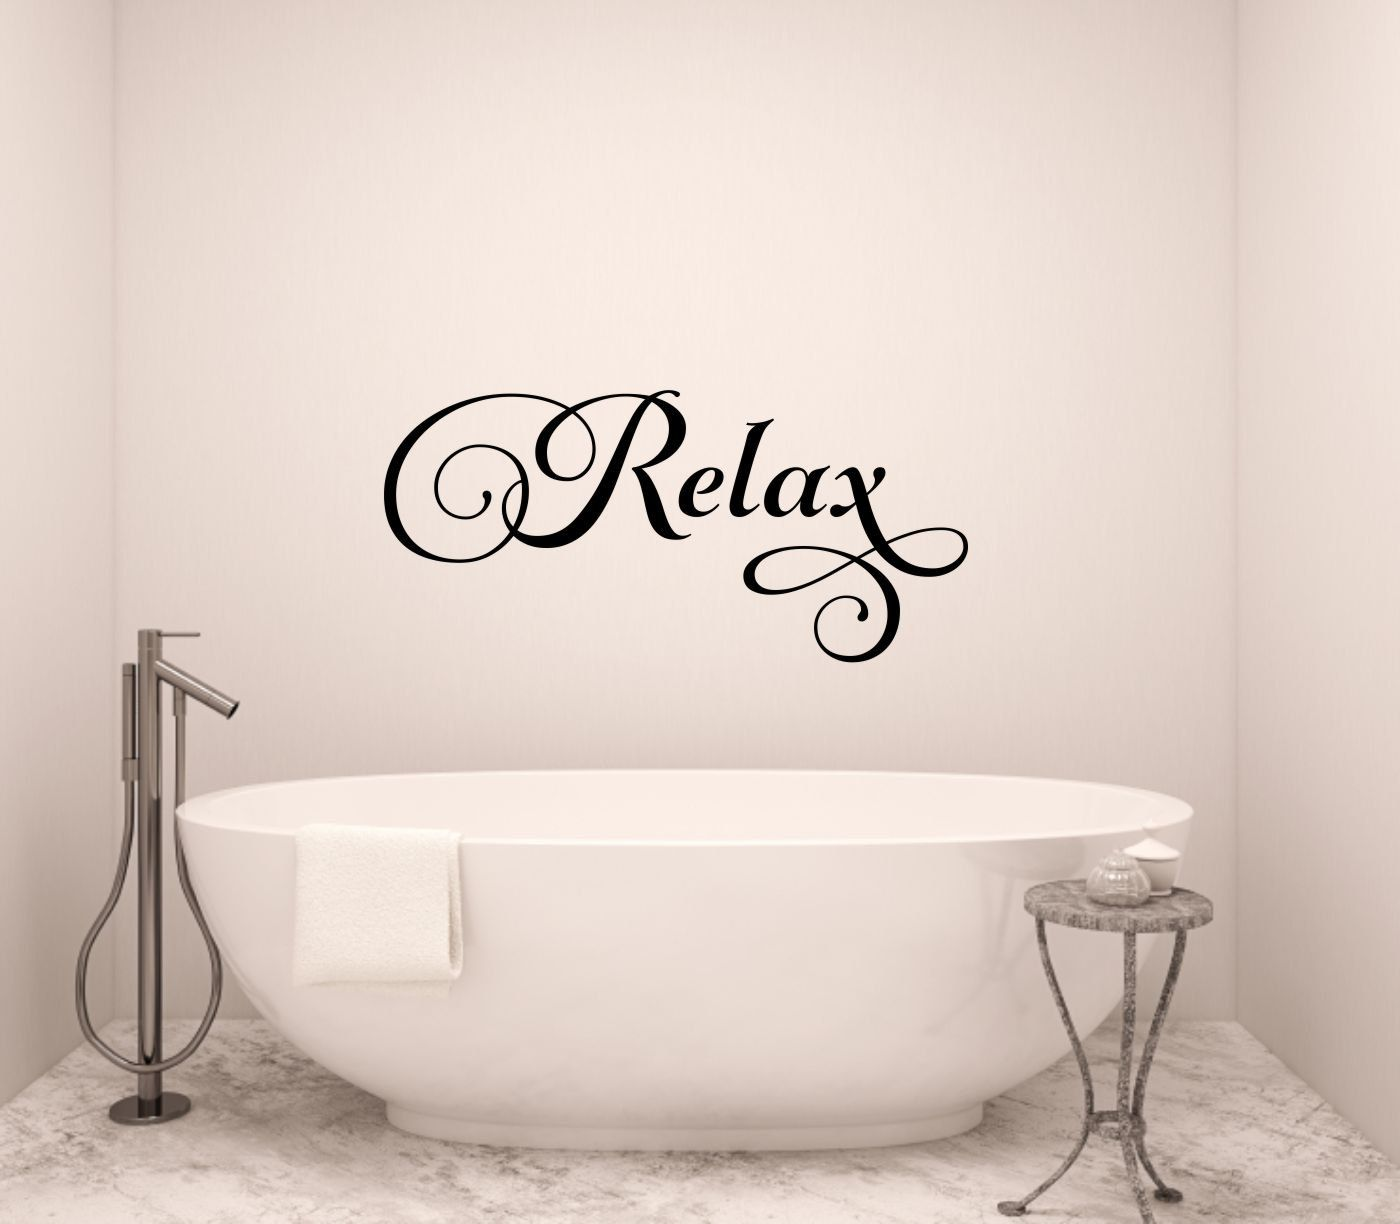 Relax Wall Decal Bathroom Wall Decal Bath Vinyl Decal Salon Etsy Bathroom Wall Decals Bathroom Vinyl Bathroom Wall Decor